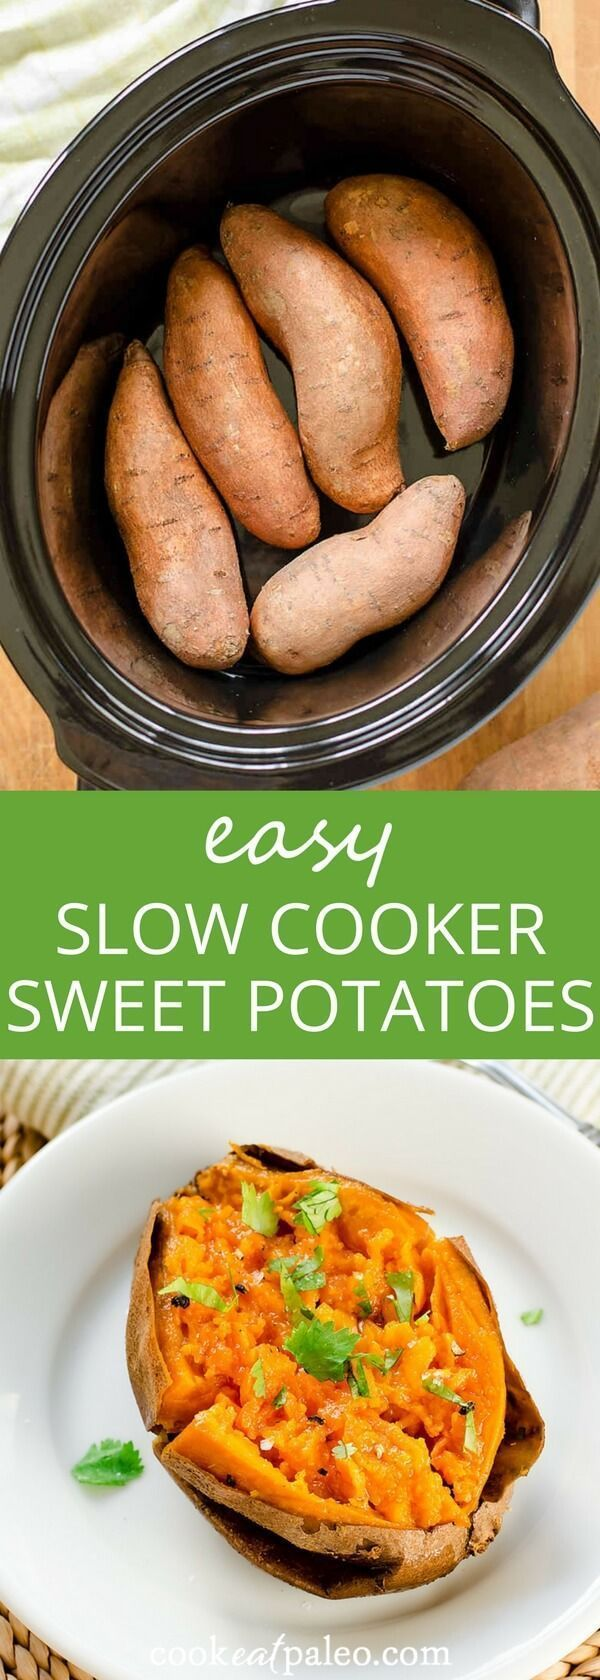 Slow cooker sweet potatoes---the easy way to cook sweet potatoes when you don't want to turn on the oven. Quick, easy, gluten-free, paleo, vegan via /cookeatpaleo/